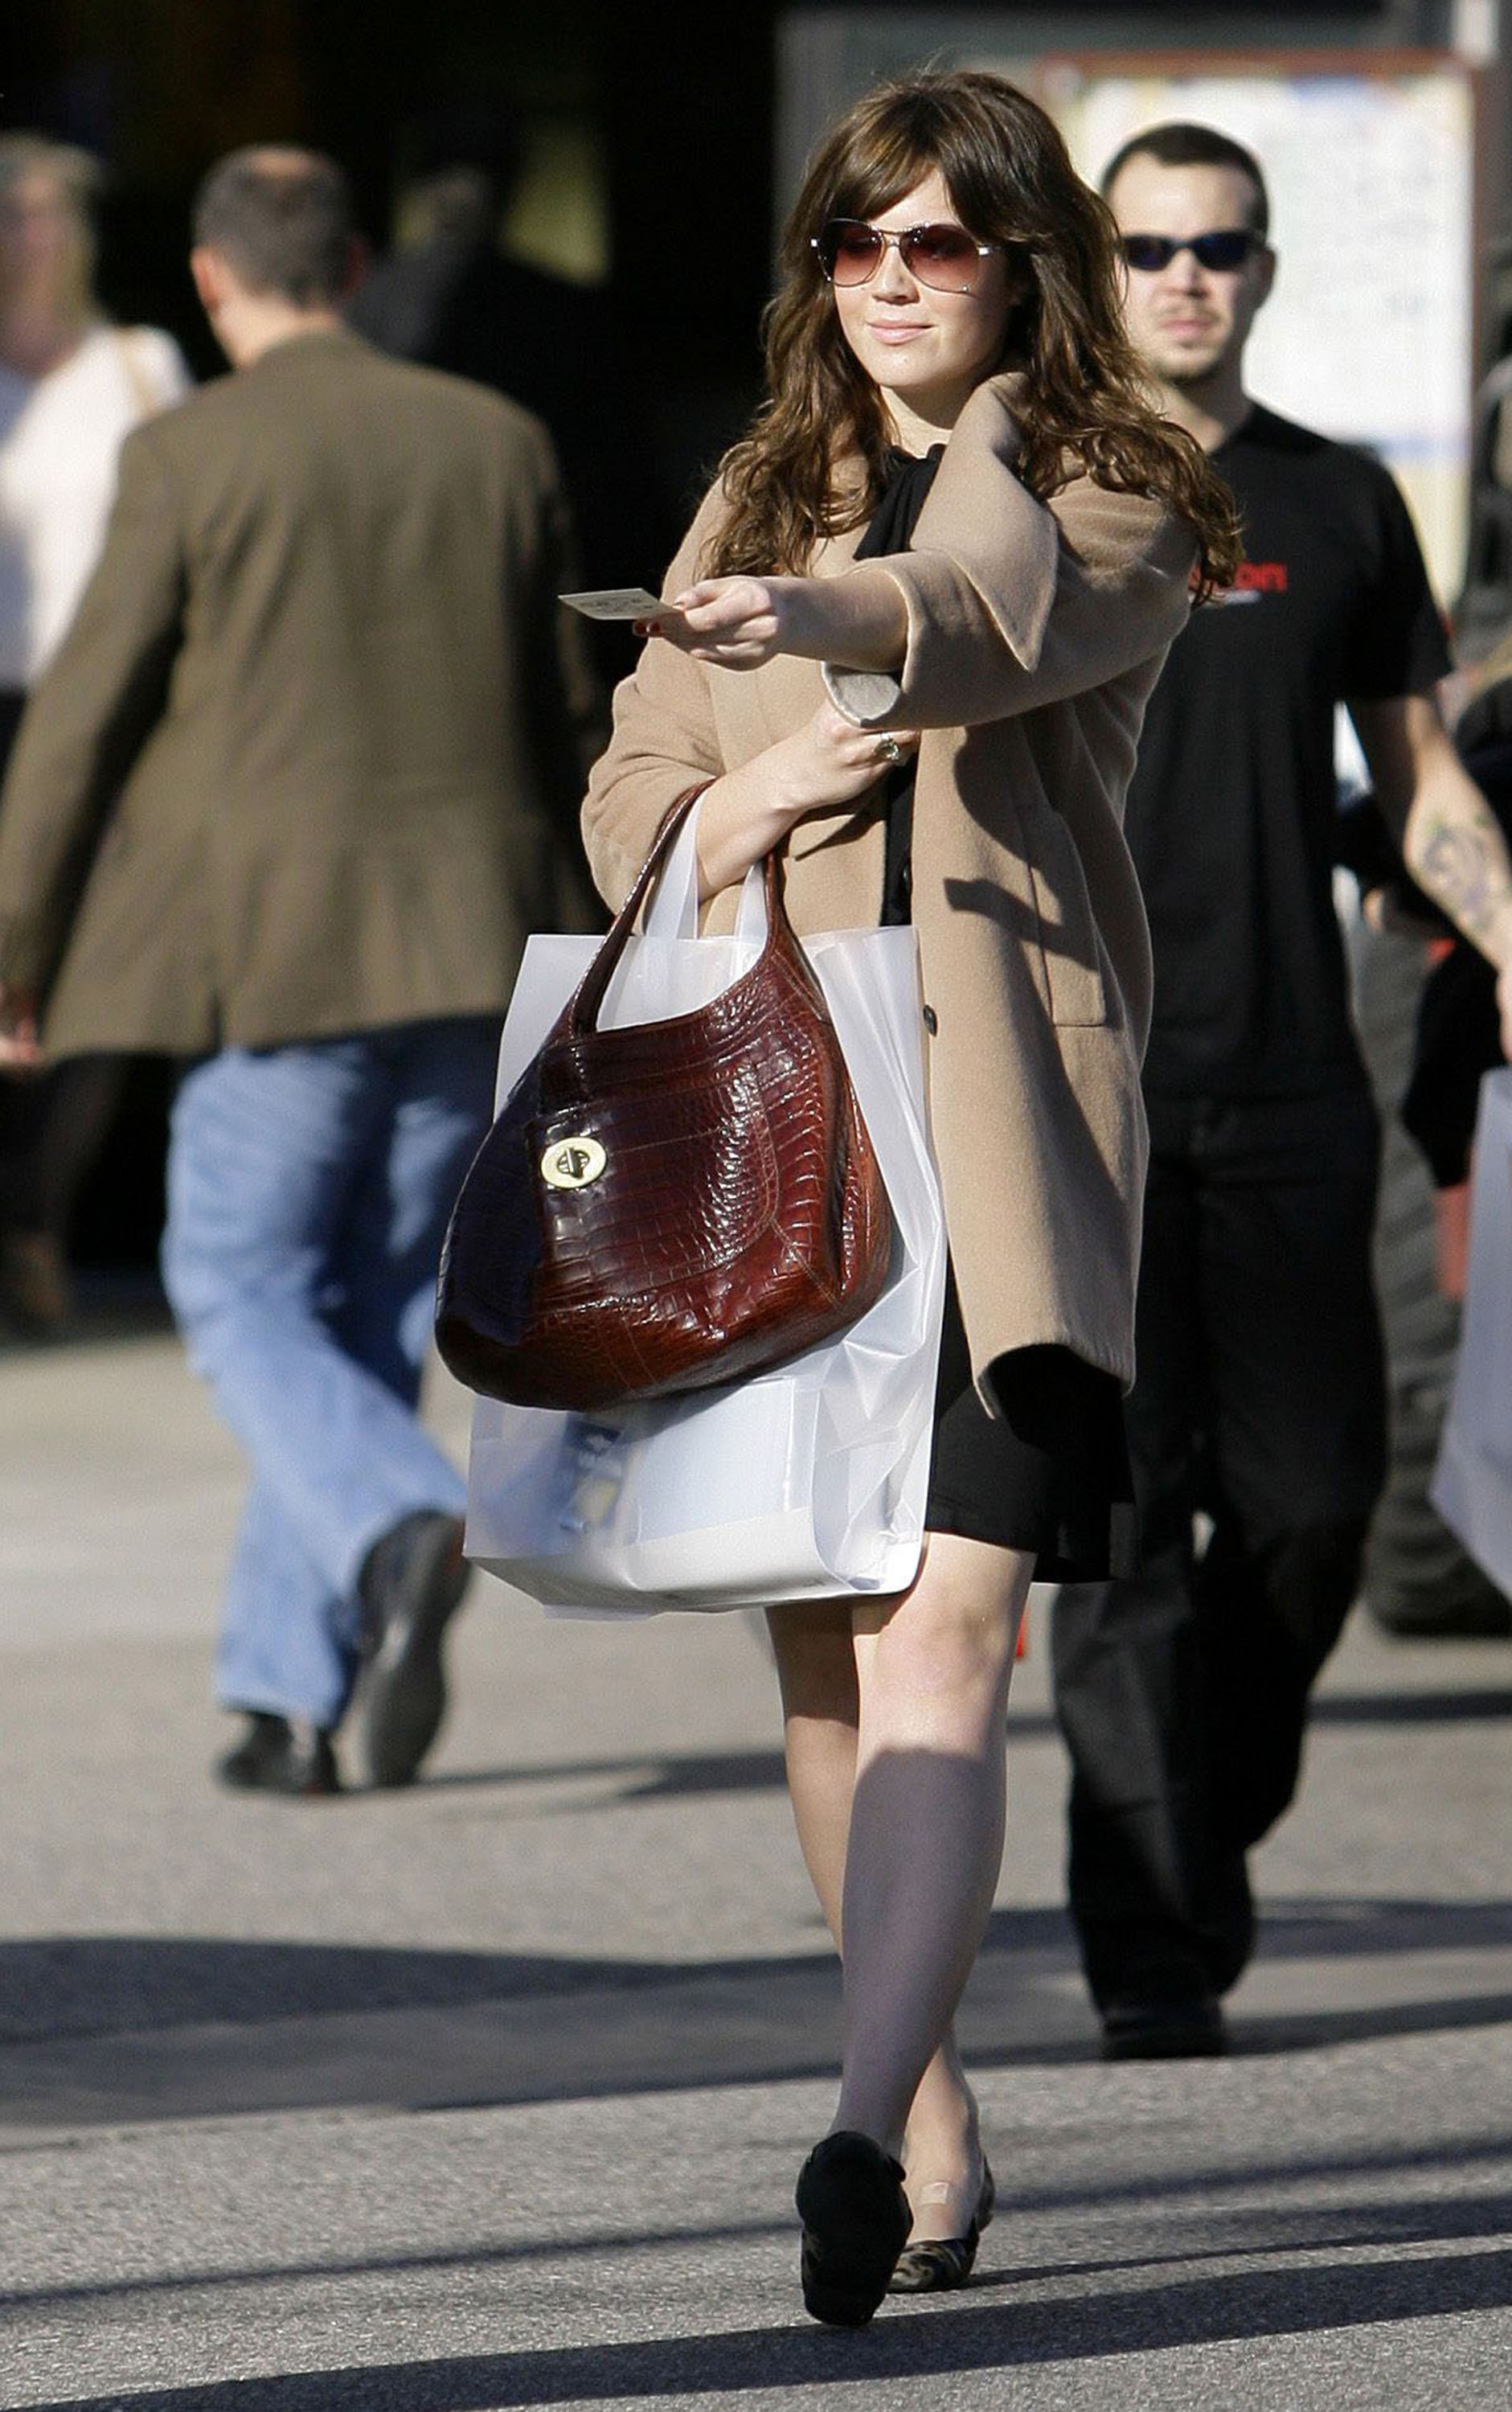 68284_celeb-city.eu_Mandy_Moore_out_and_about_in_West_Hollywood_10.12.2007_32_122_1037lo.jpg